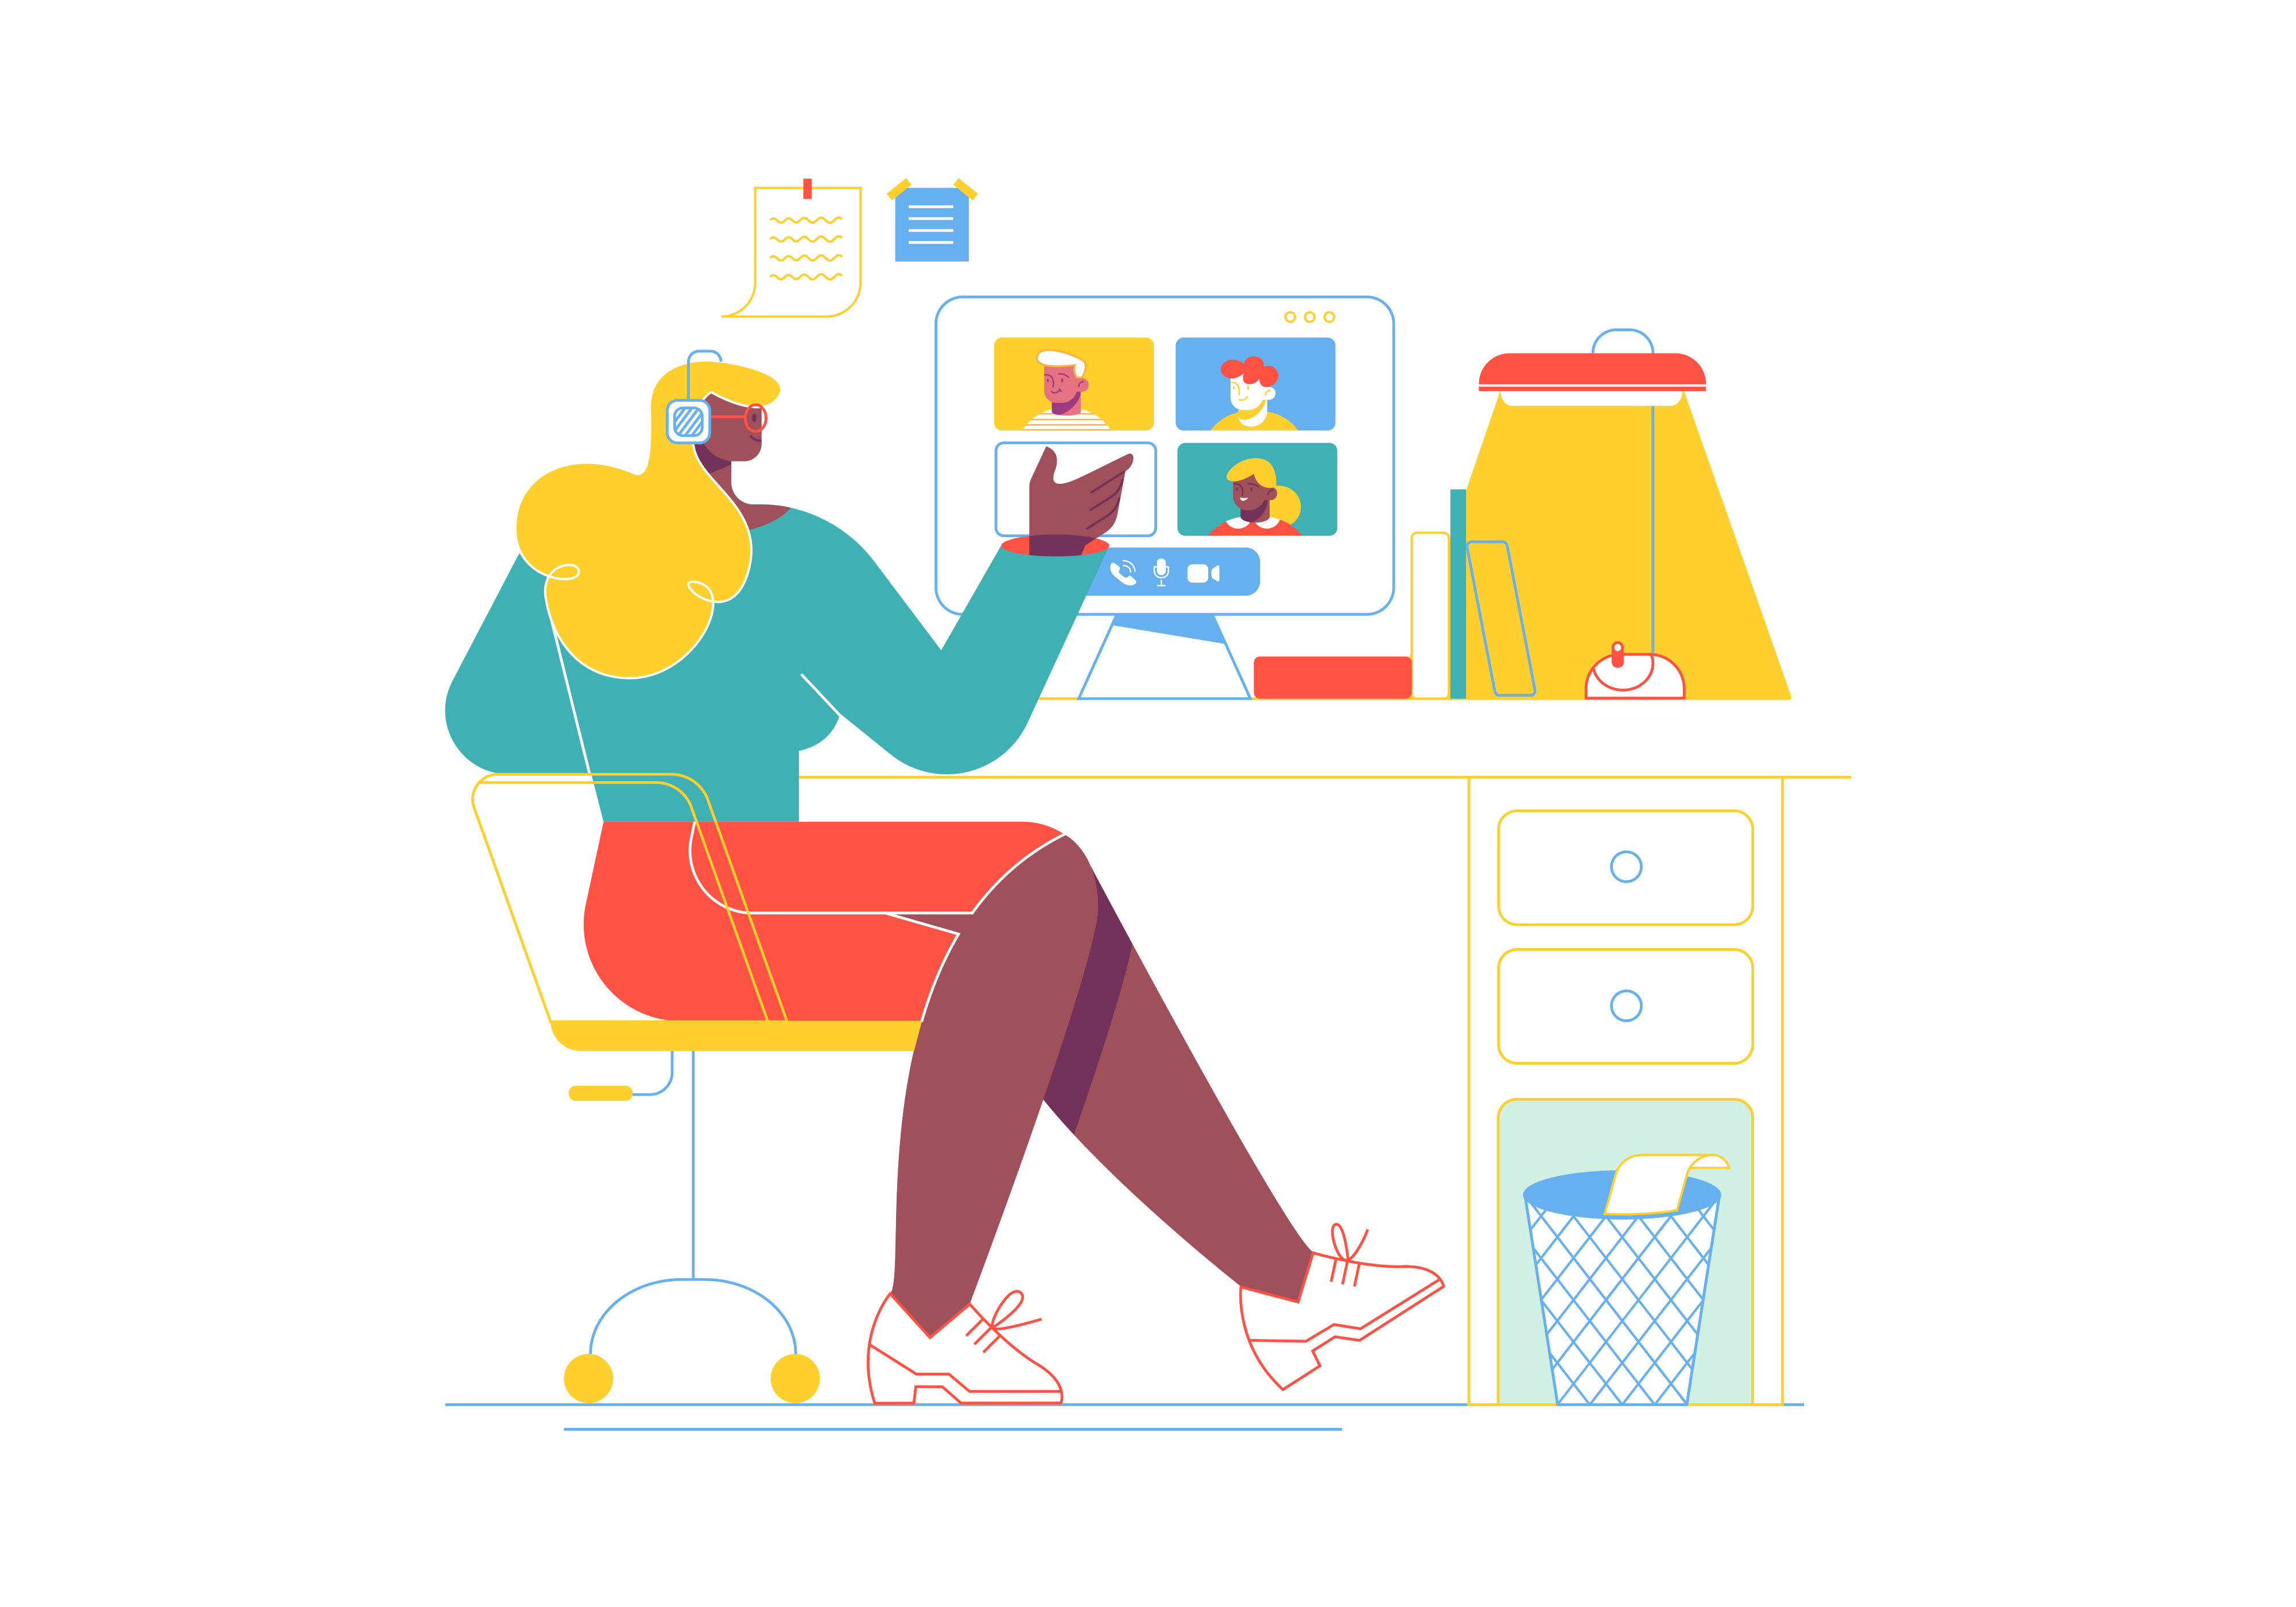 A colorful illustration of an individual sitting at a desk talking to peers on a video call.